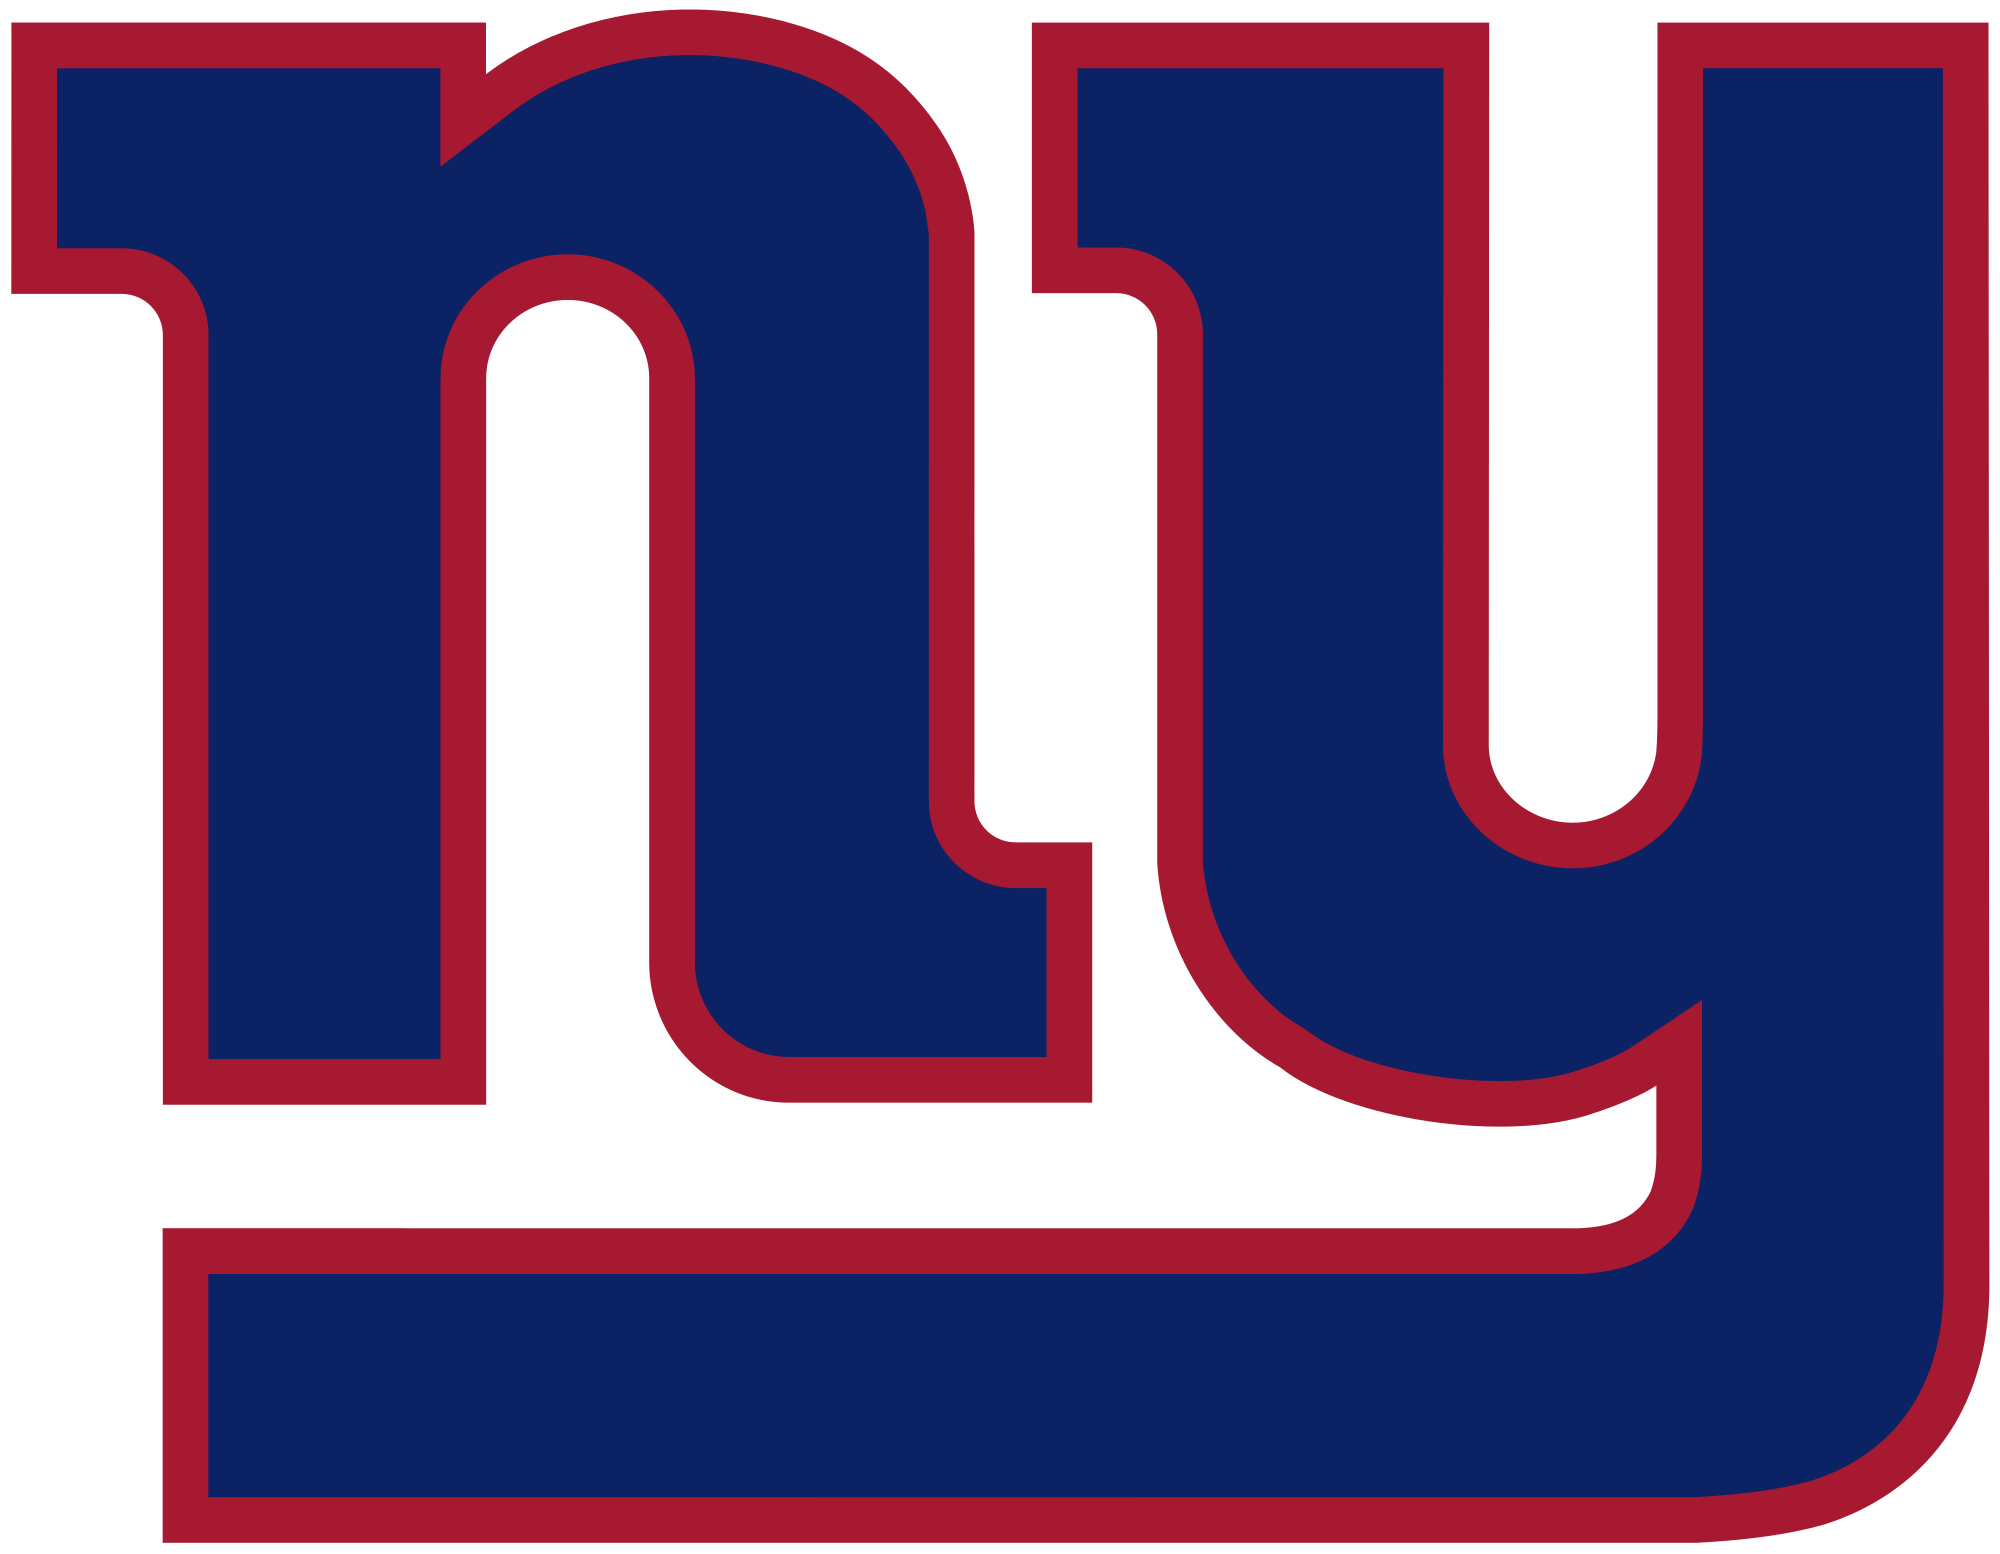 New york giants logo png. File svg wikimedia commons